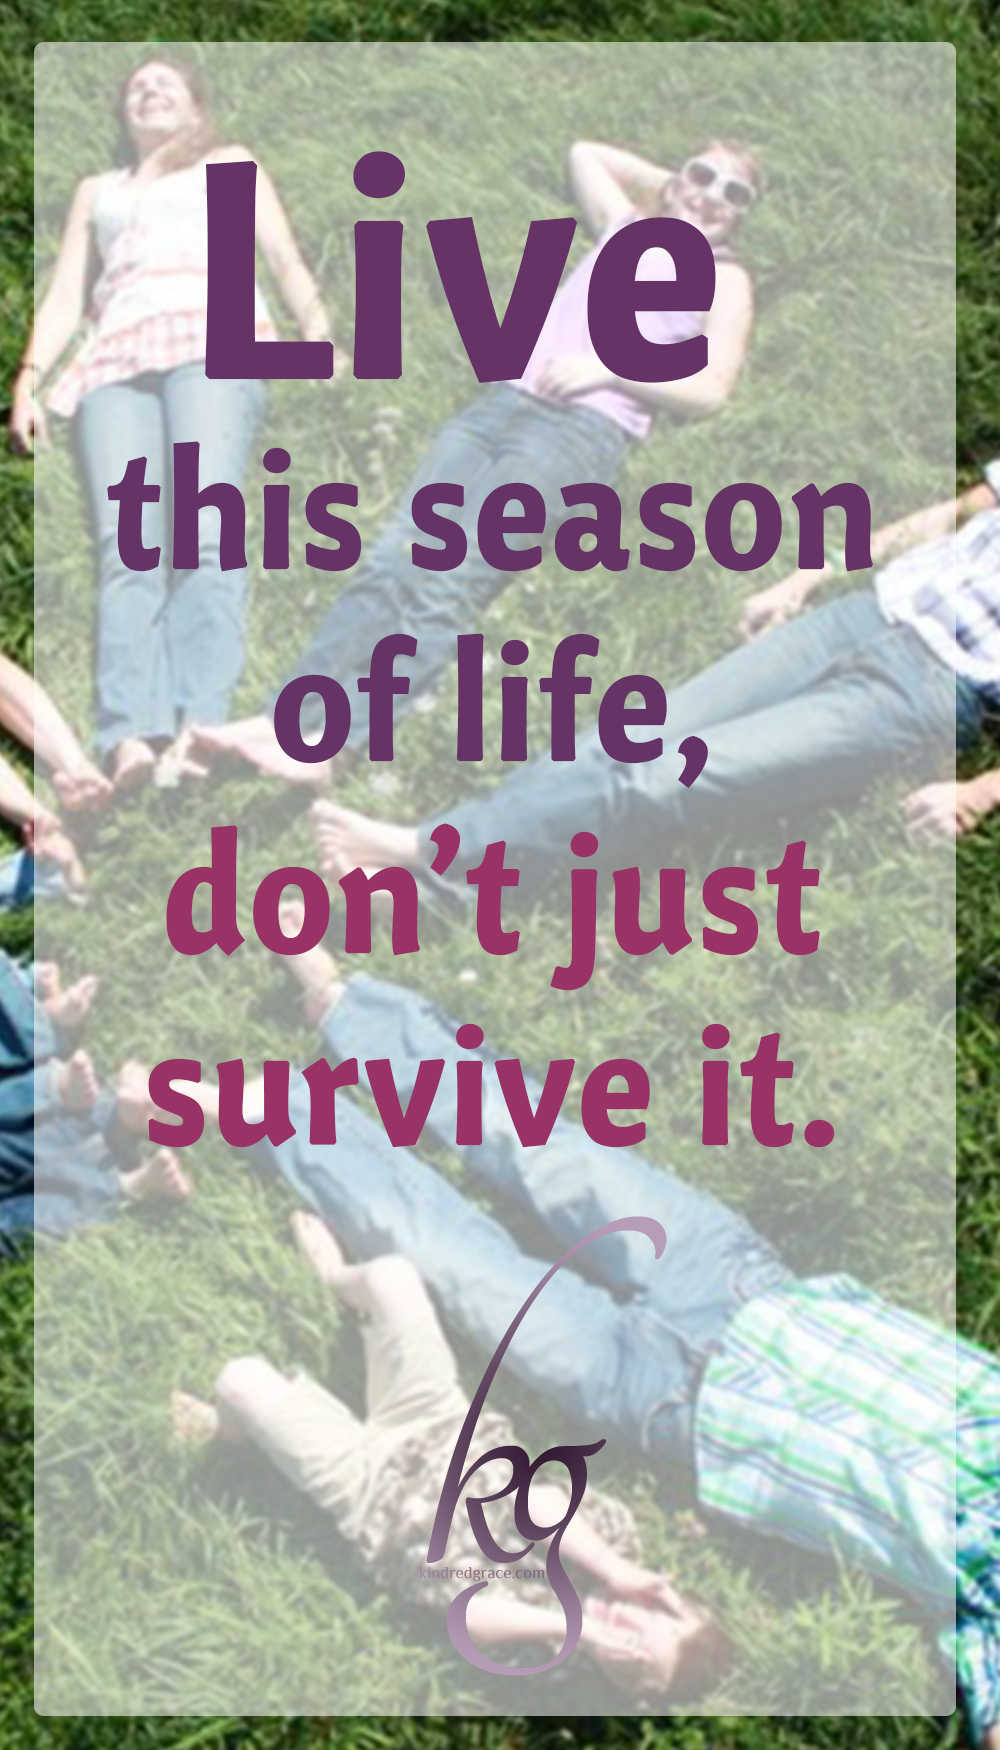 Live this season of life – don't just survive it. Live this season by letting it make you instead of break you.